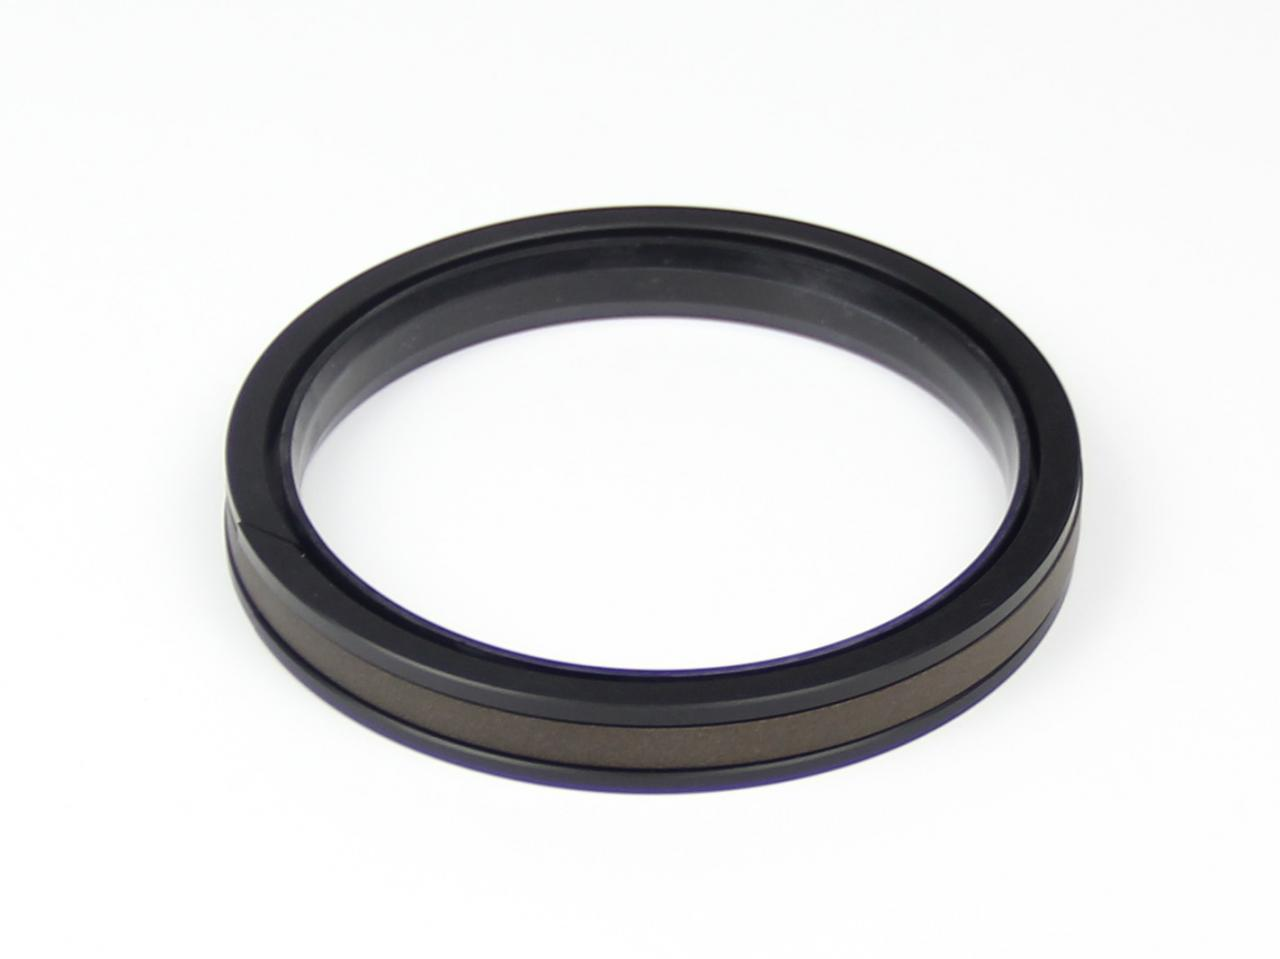 DSH-Pneumatic Cylinder Piston Seals Hydraulic Cylinder Compact Seal-3